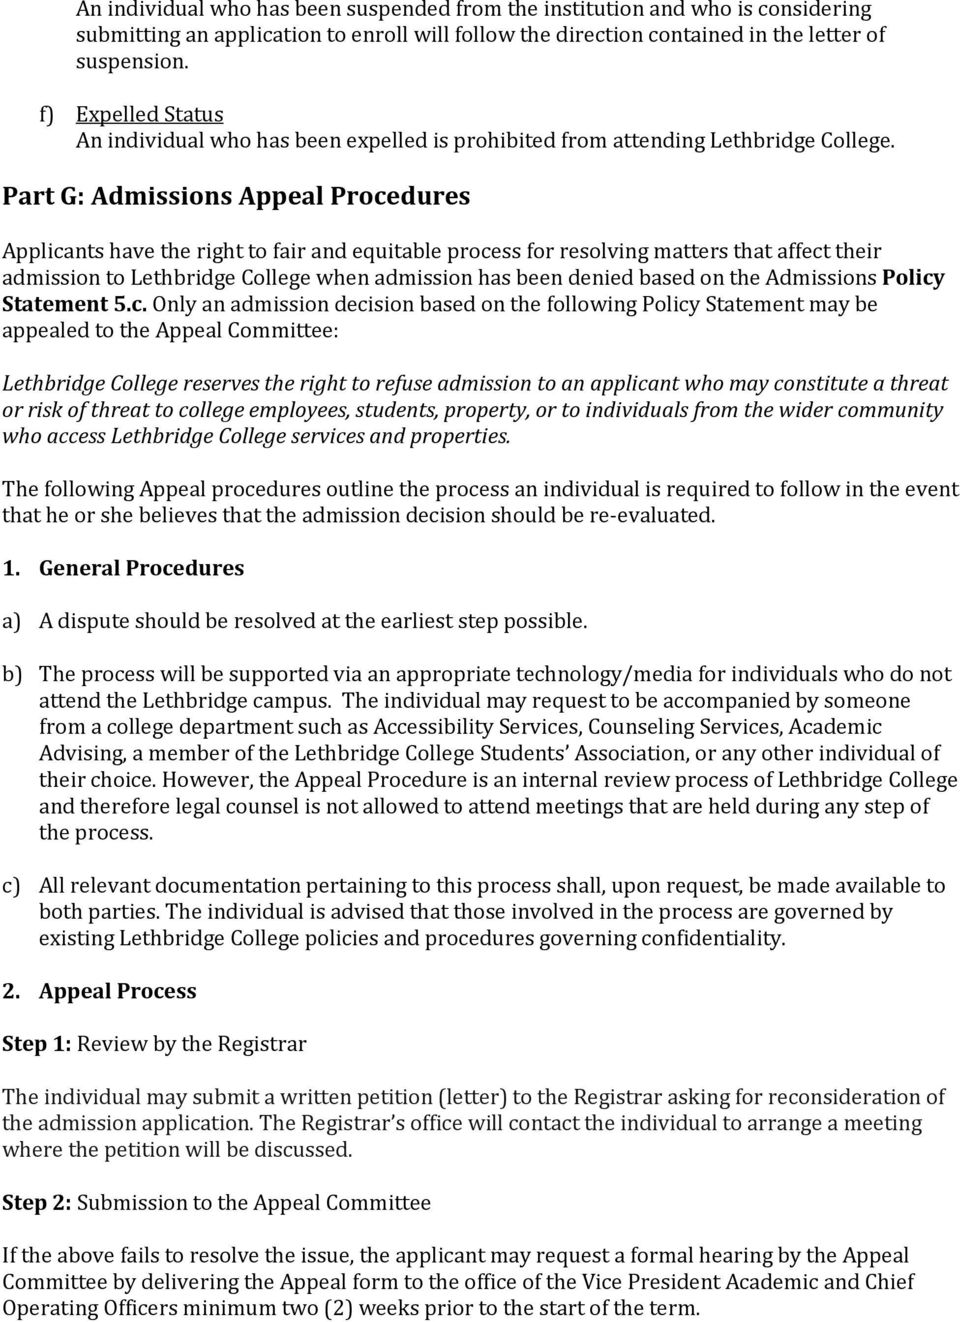 Part G: Admissions Appeal Procedures Applicants have the right to fair and equitable process for resolving matters that affect their admission to Lethbridge College when admission has been denied